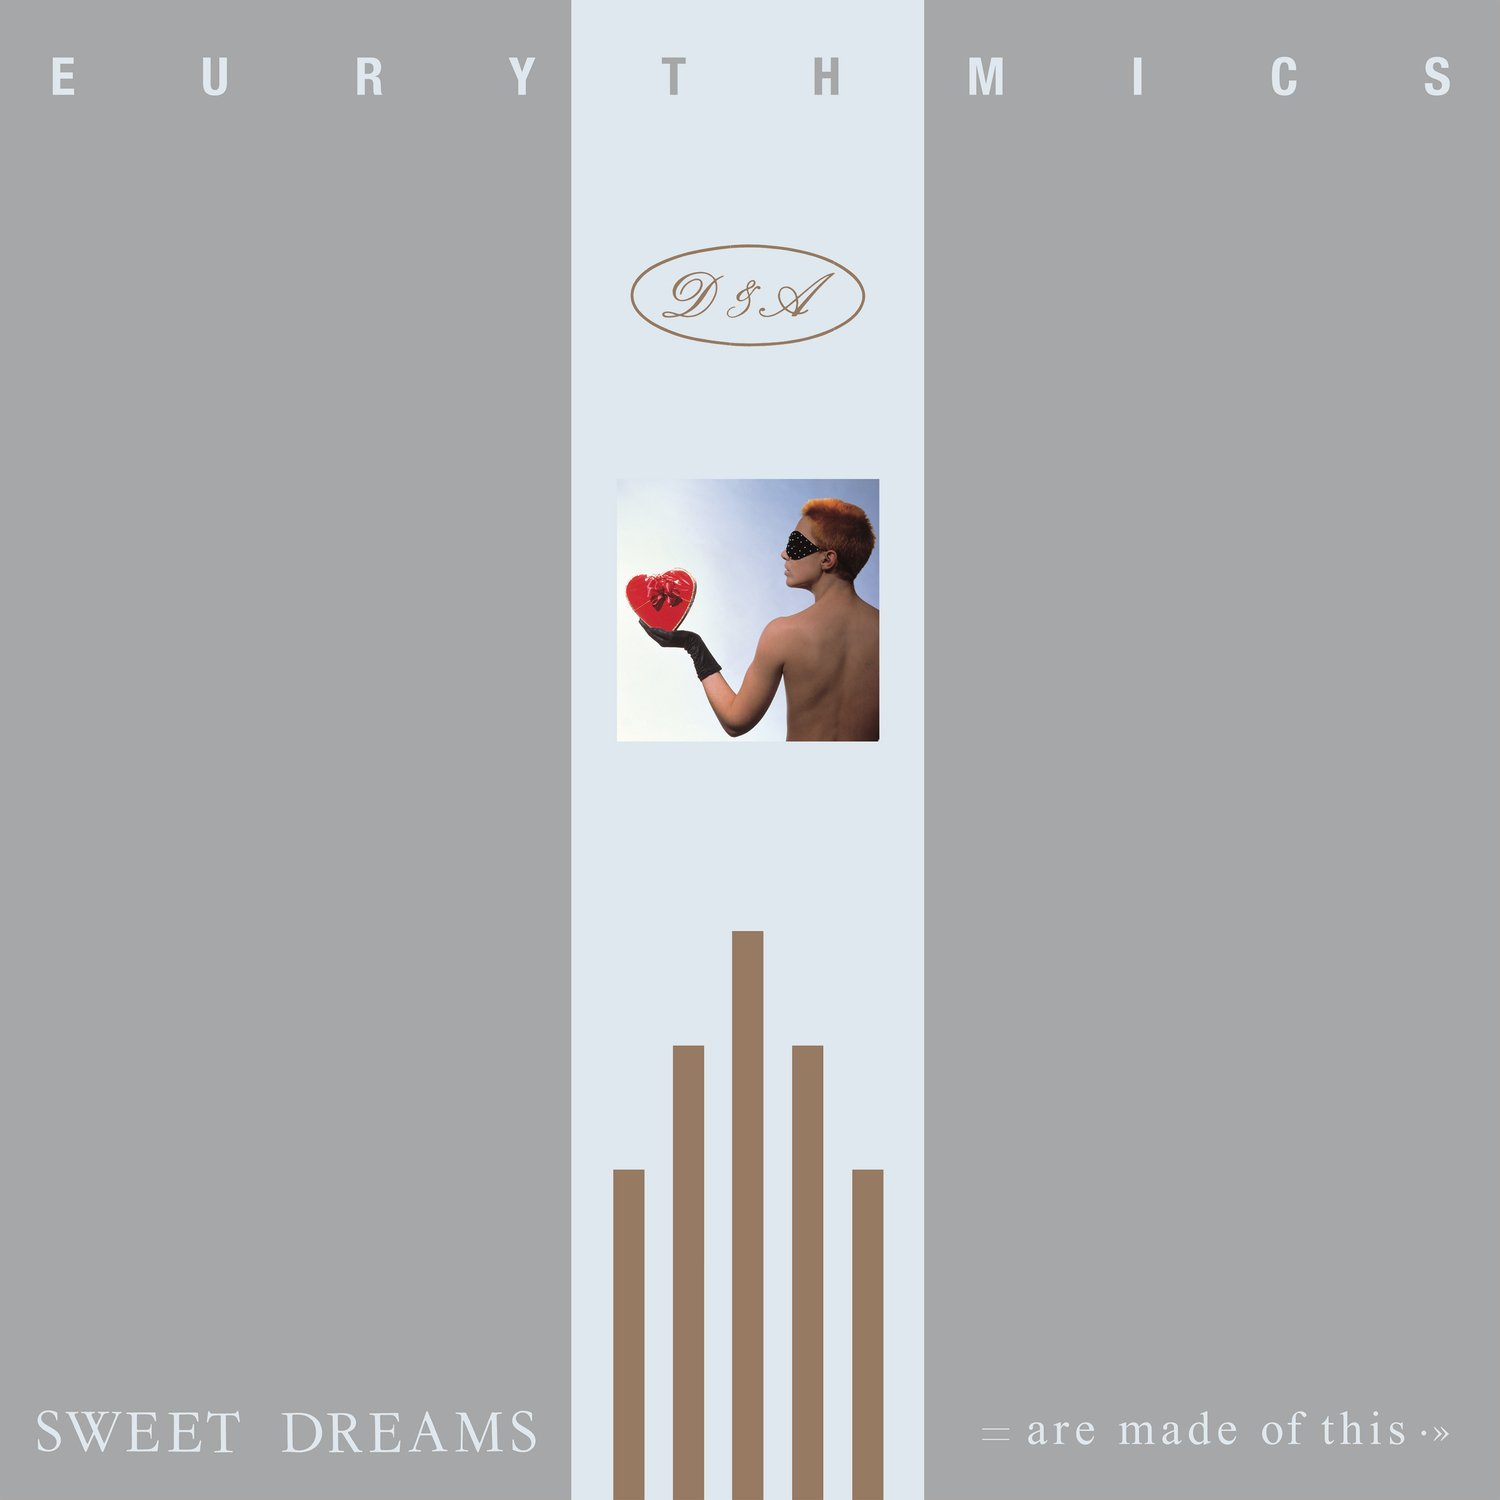 Sweet Dreams [ Are Made Of This ] ( song ) ... Eurythmics